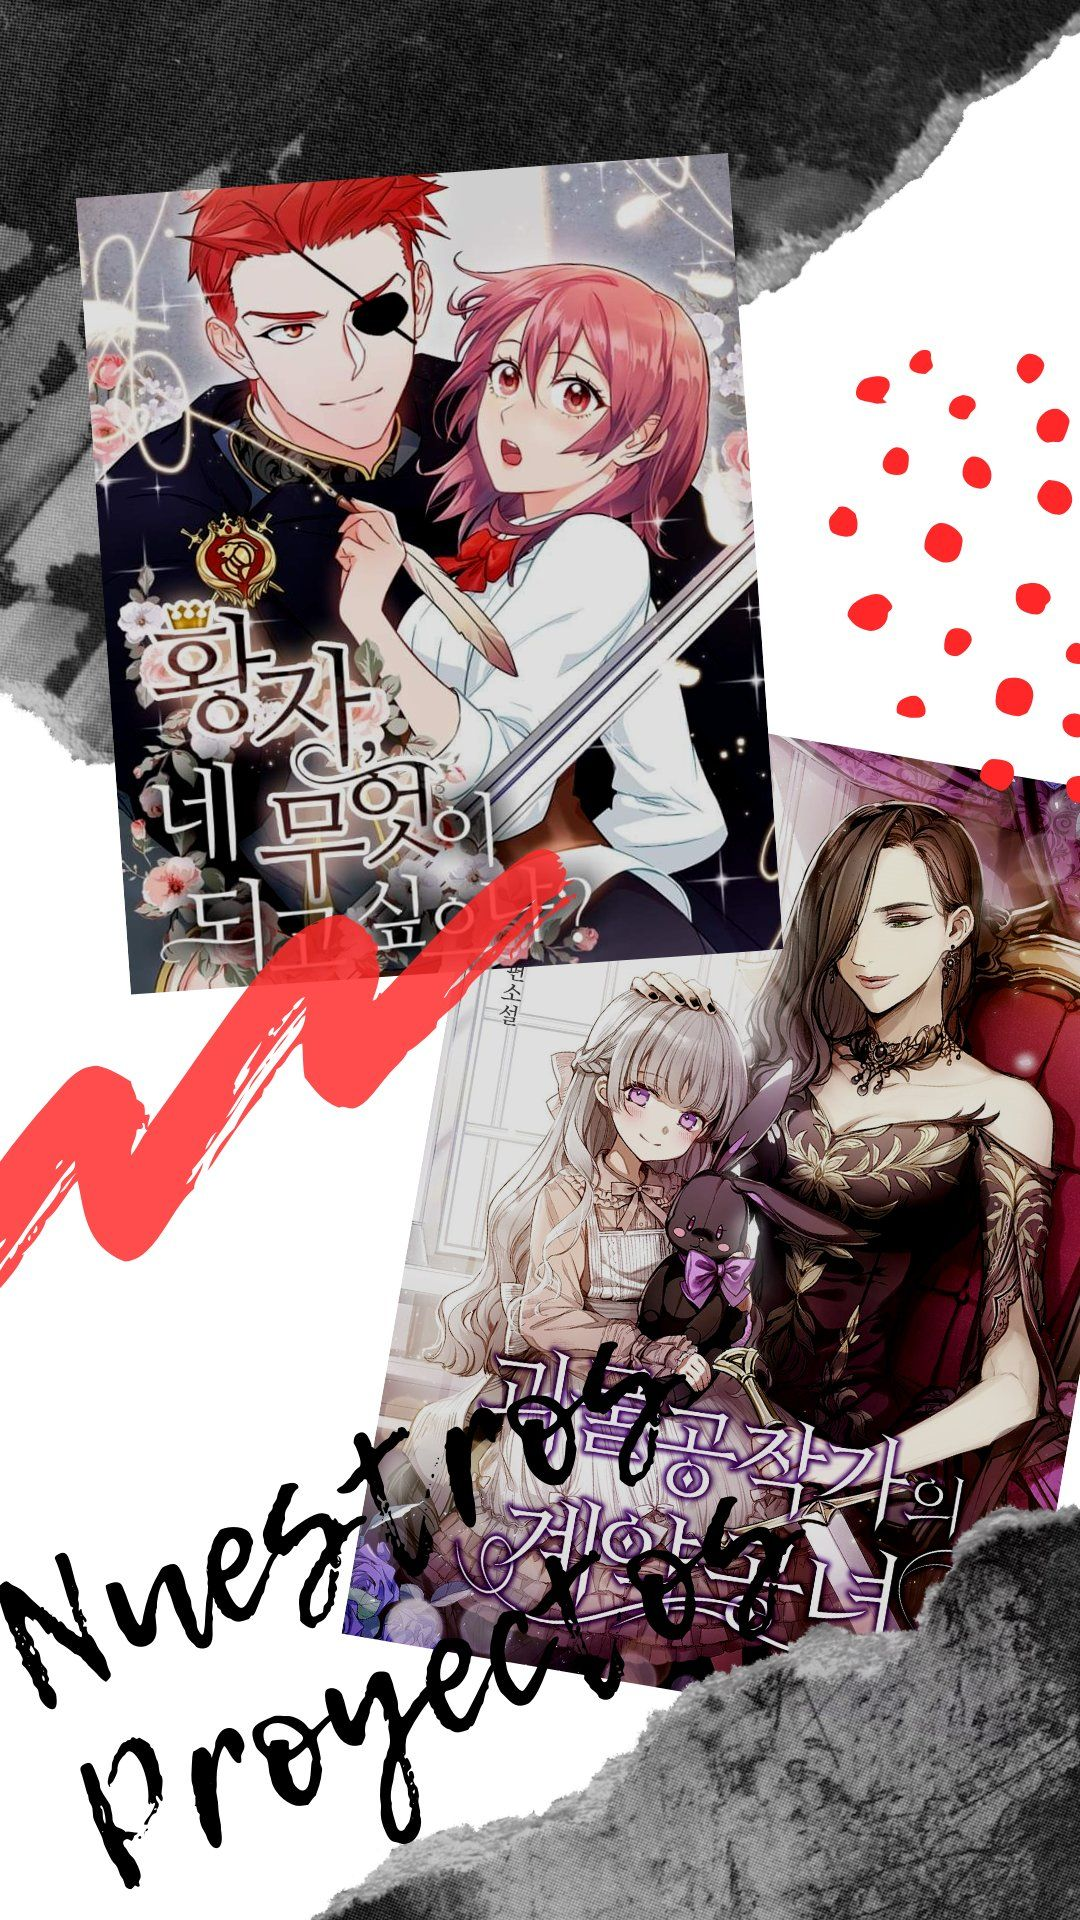 Pin On Manga You should give them a visit if you're looking for similar novels to read. pin on manga